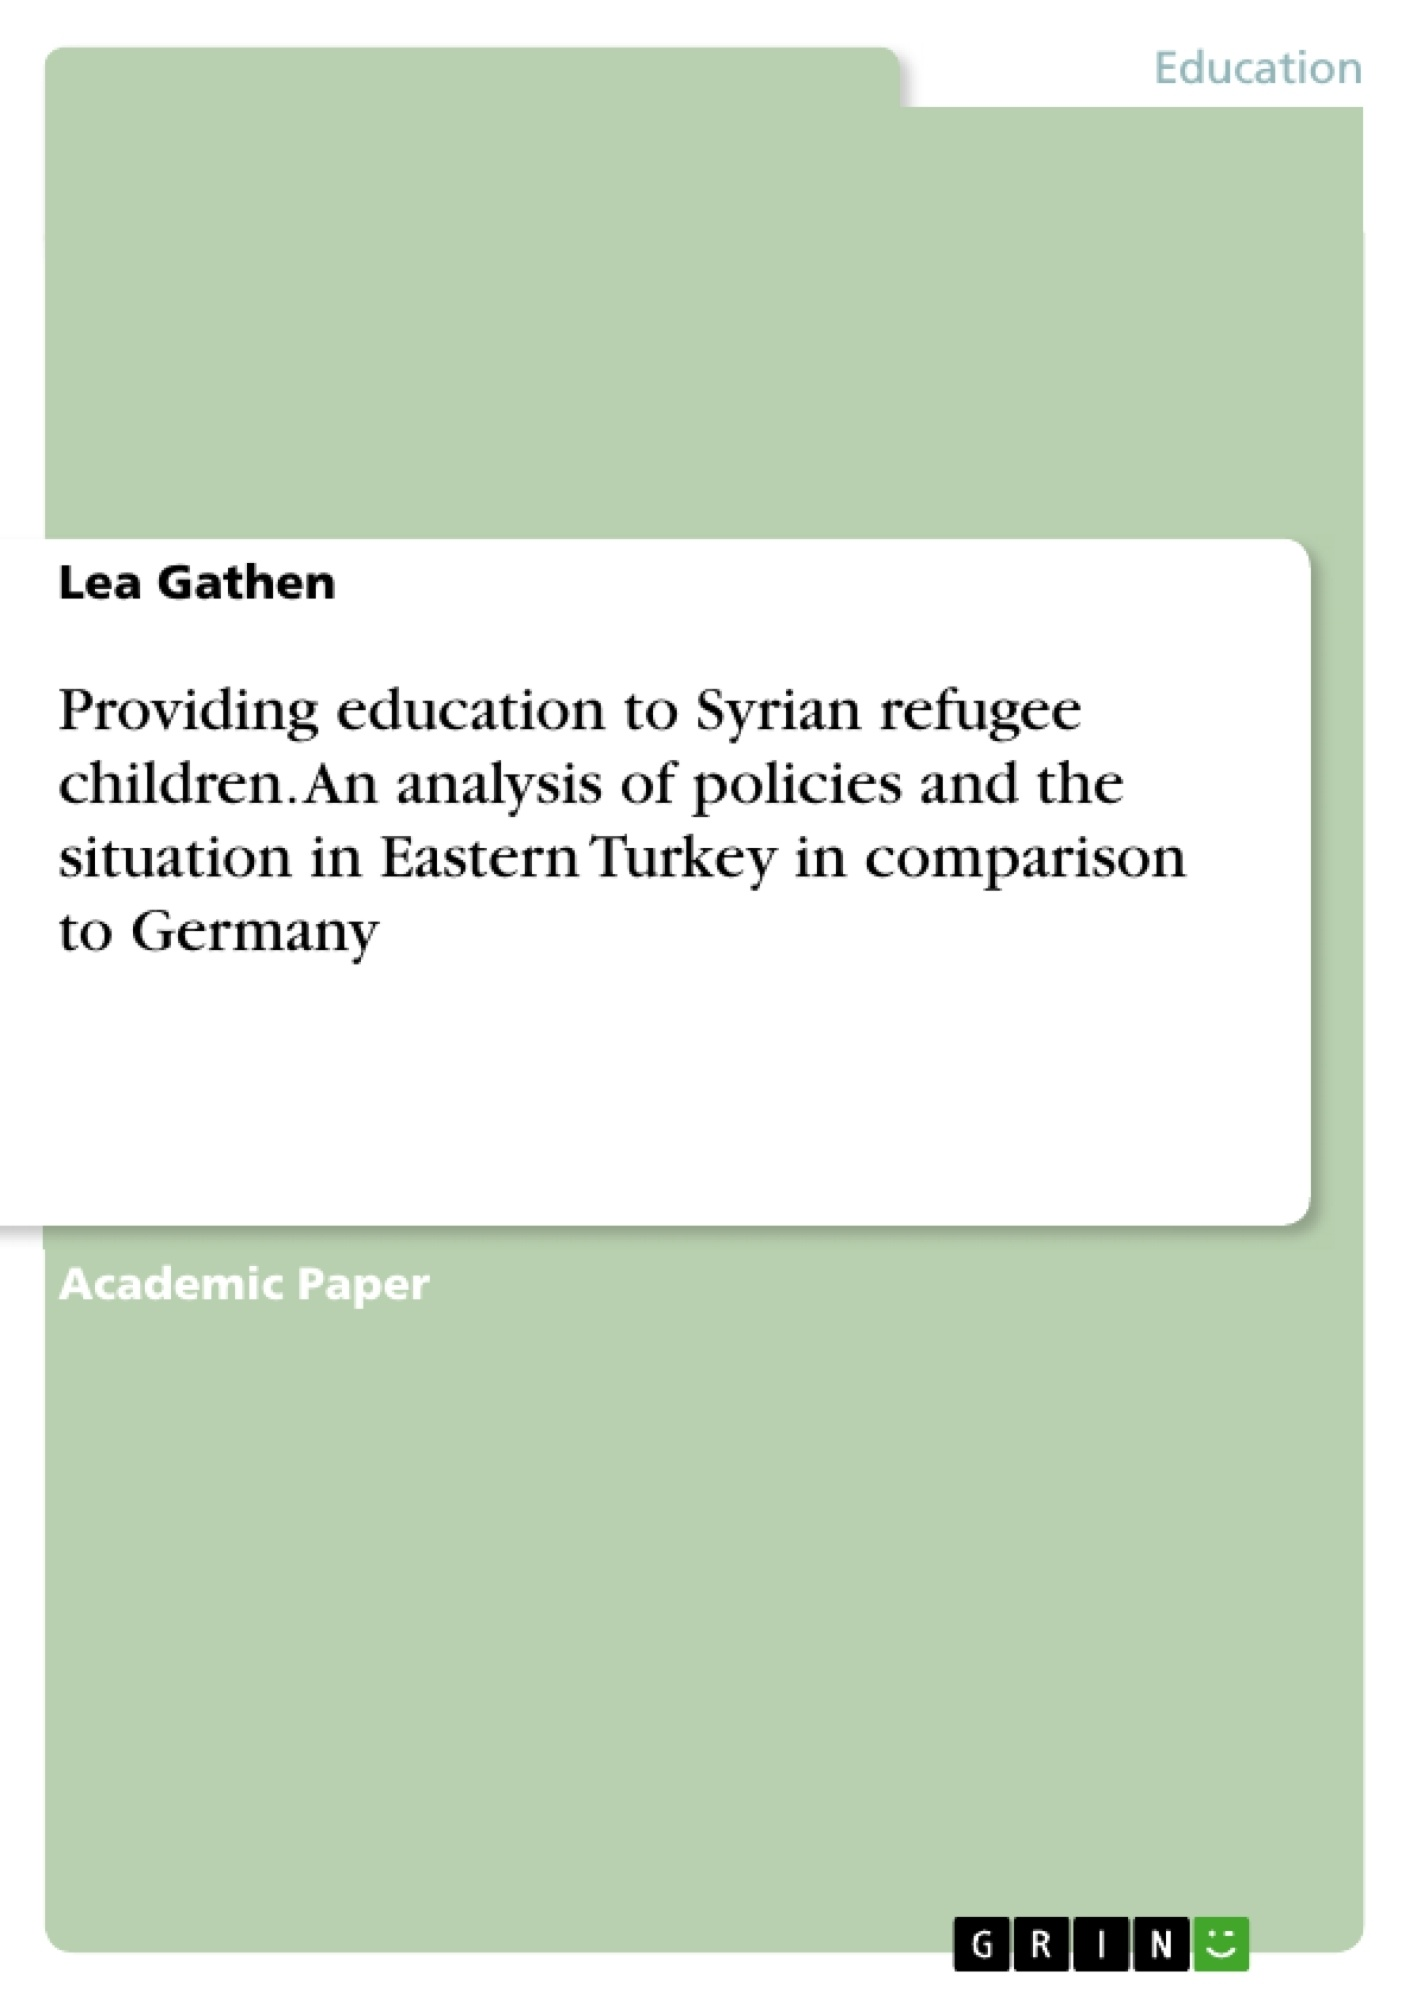 Title: Providing education to Syrian refugee children. An analysis of policies and the situation in Eastern Turkey in comparison to Germany